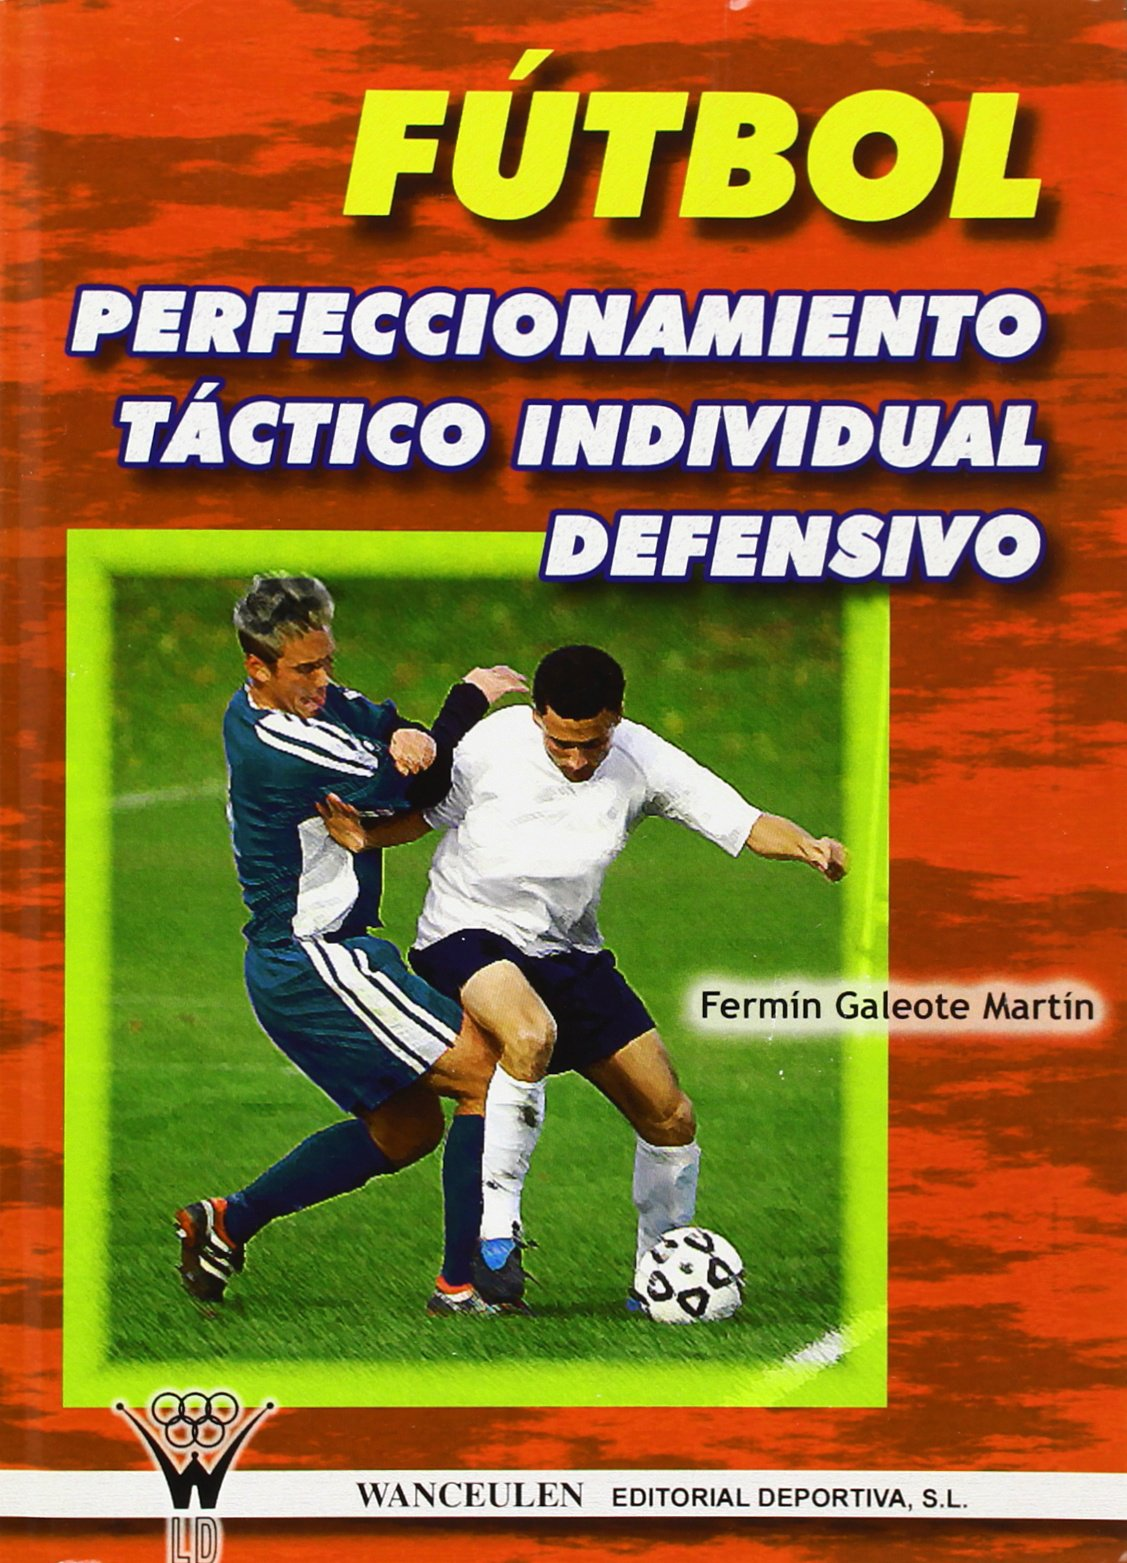 Fútbol, Perfeccionamiento Táctico Defensivo (Spanish Edition)